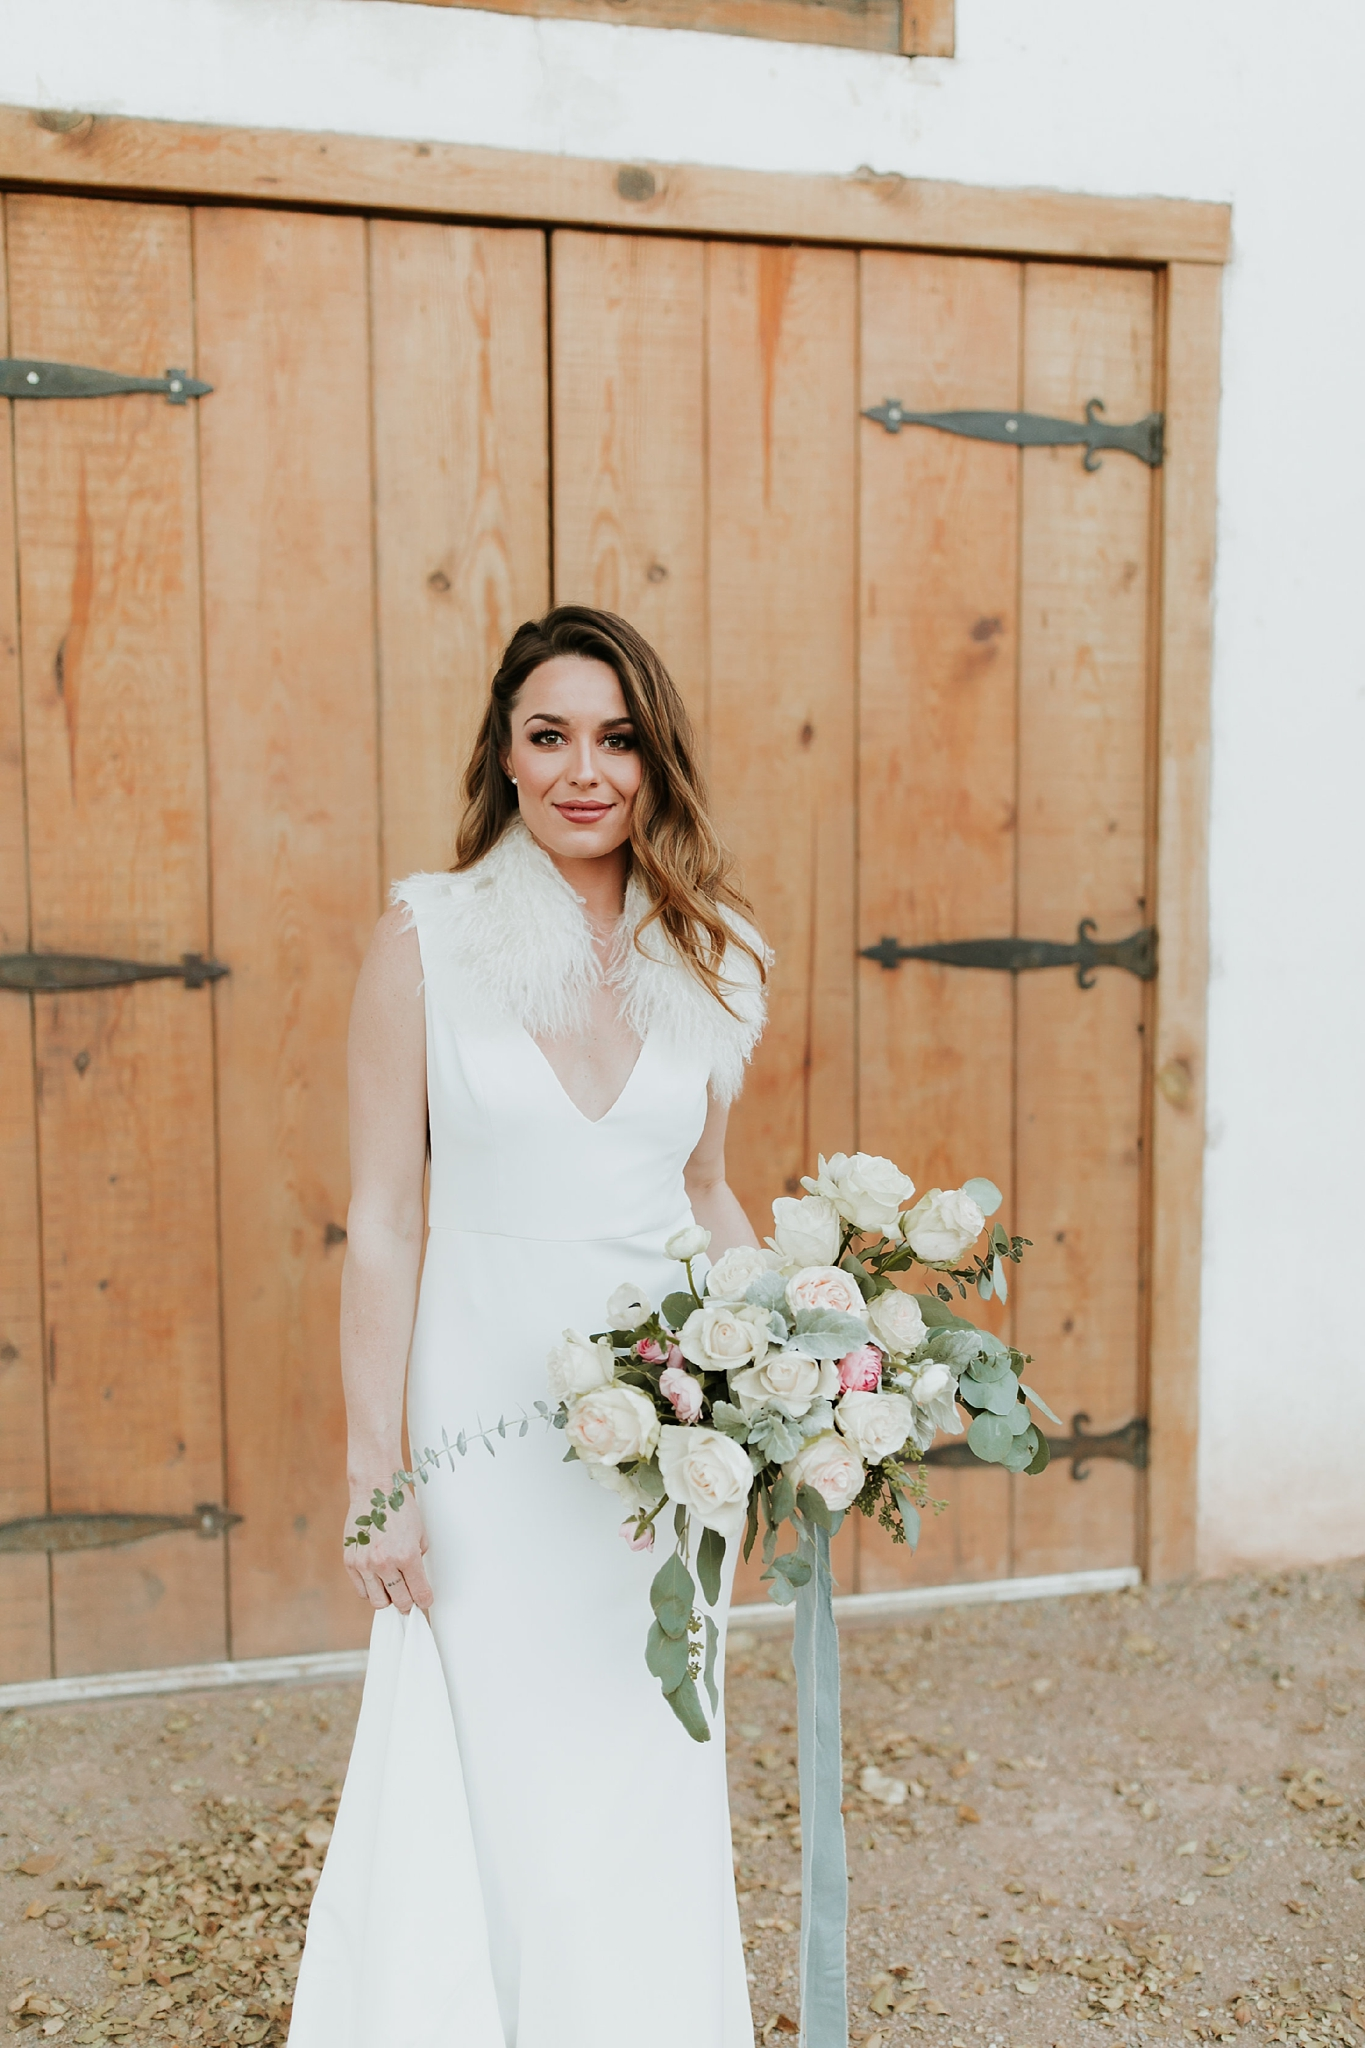 Alicia+lucia+photography+-+albuquerque+wedding+photographer+-+santa+fe+wedding+photography+-+new+mexico+wedding+photographer+-+bridal+shoot+-+styled+bridal+shoot+-+southwest+bride_0017.jpg